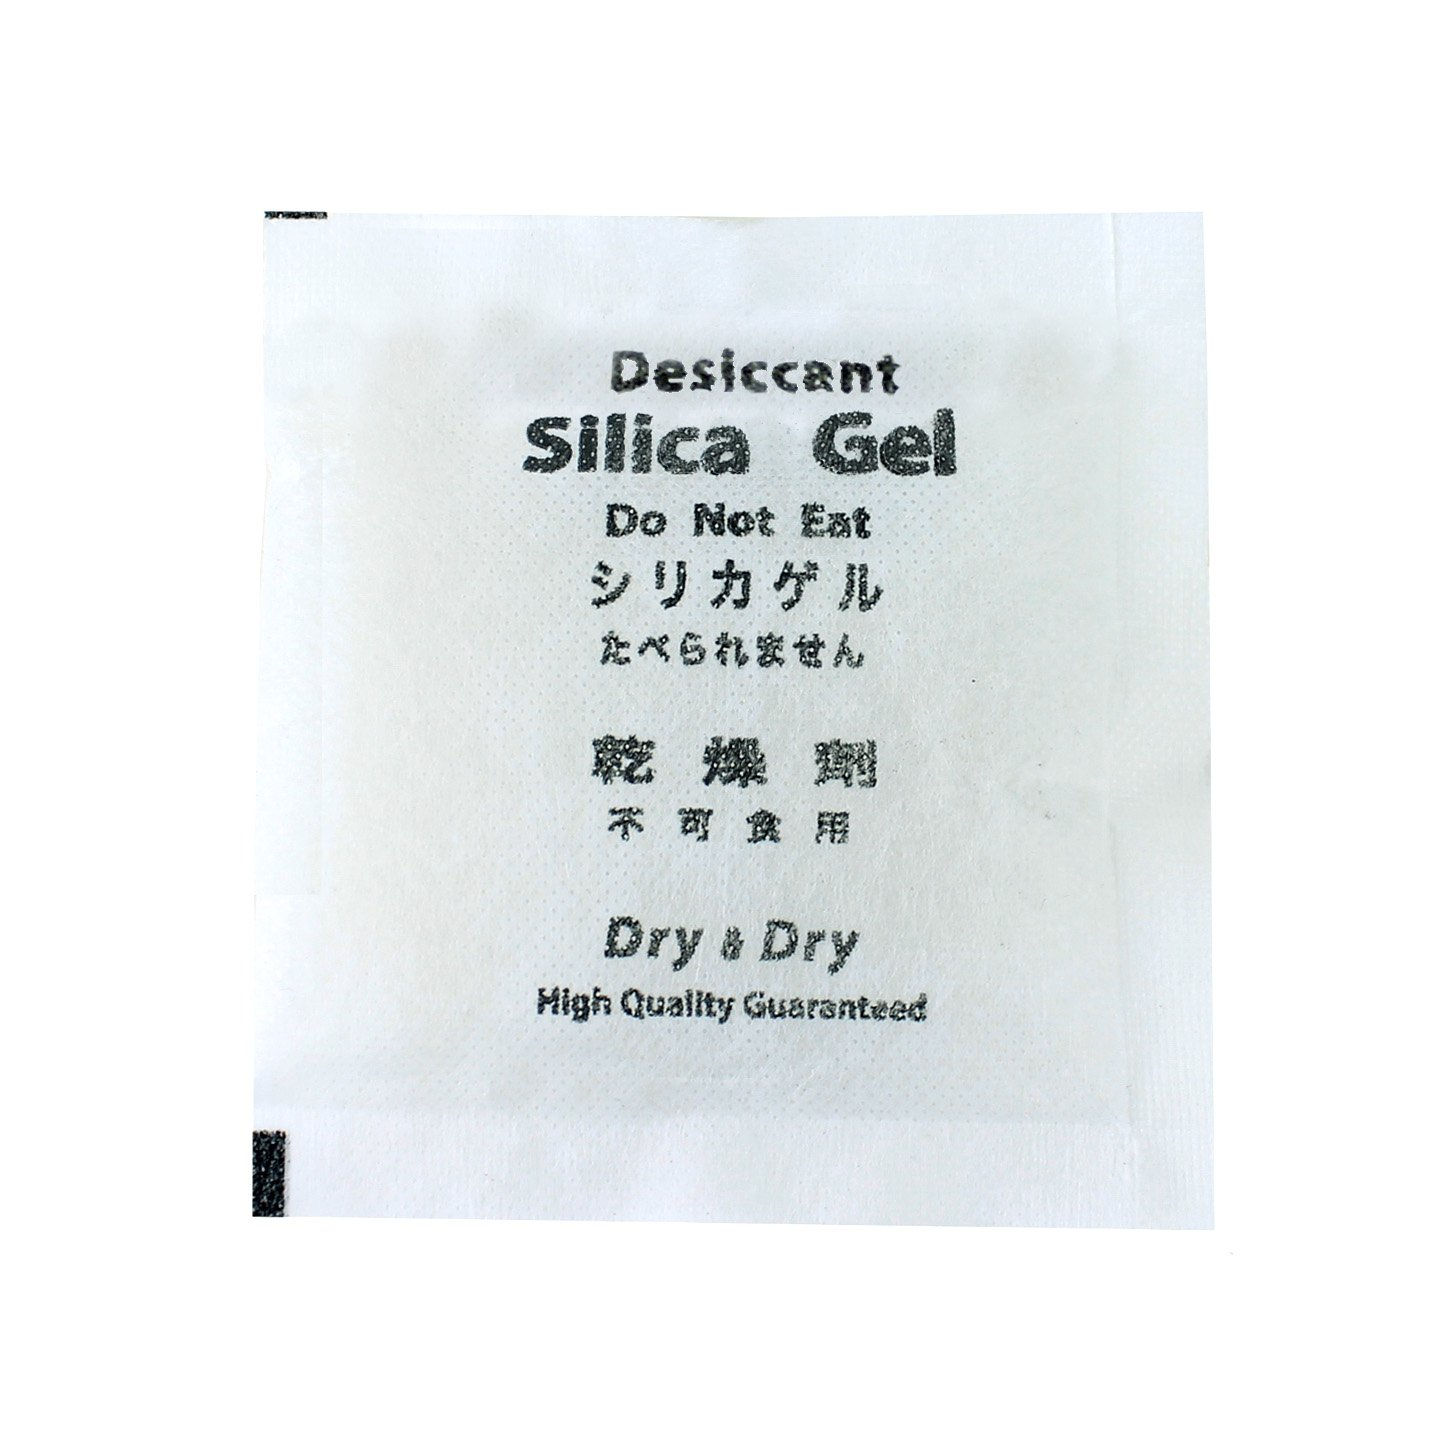 50 Gram Pack of 10 ''Dry & Dry'' Premium Pure & Safe Silica Gel Packets Desiccant Dehumidifiers - Rechargeable Fabric by DRY&DRY (Image #4)